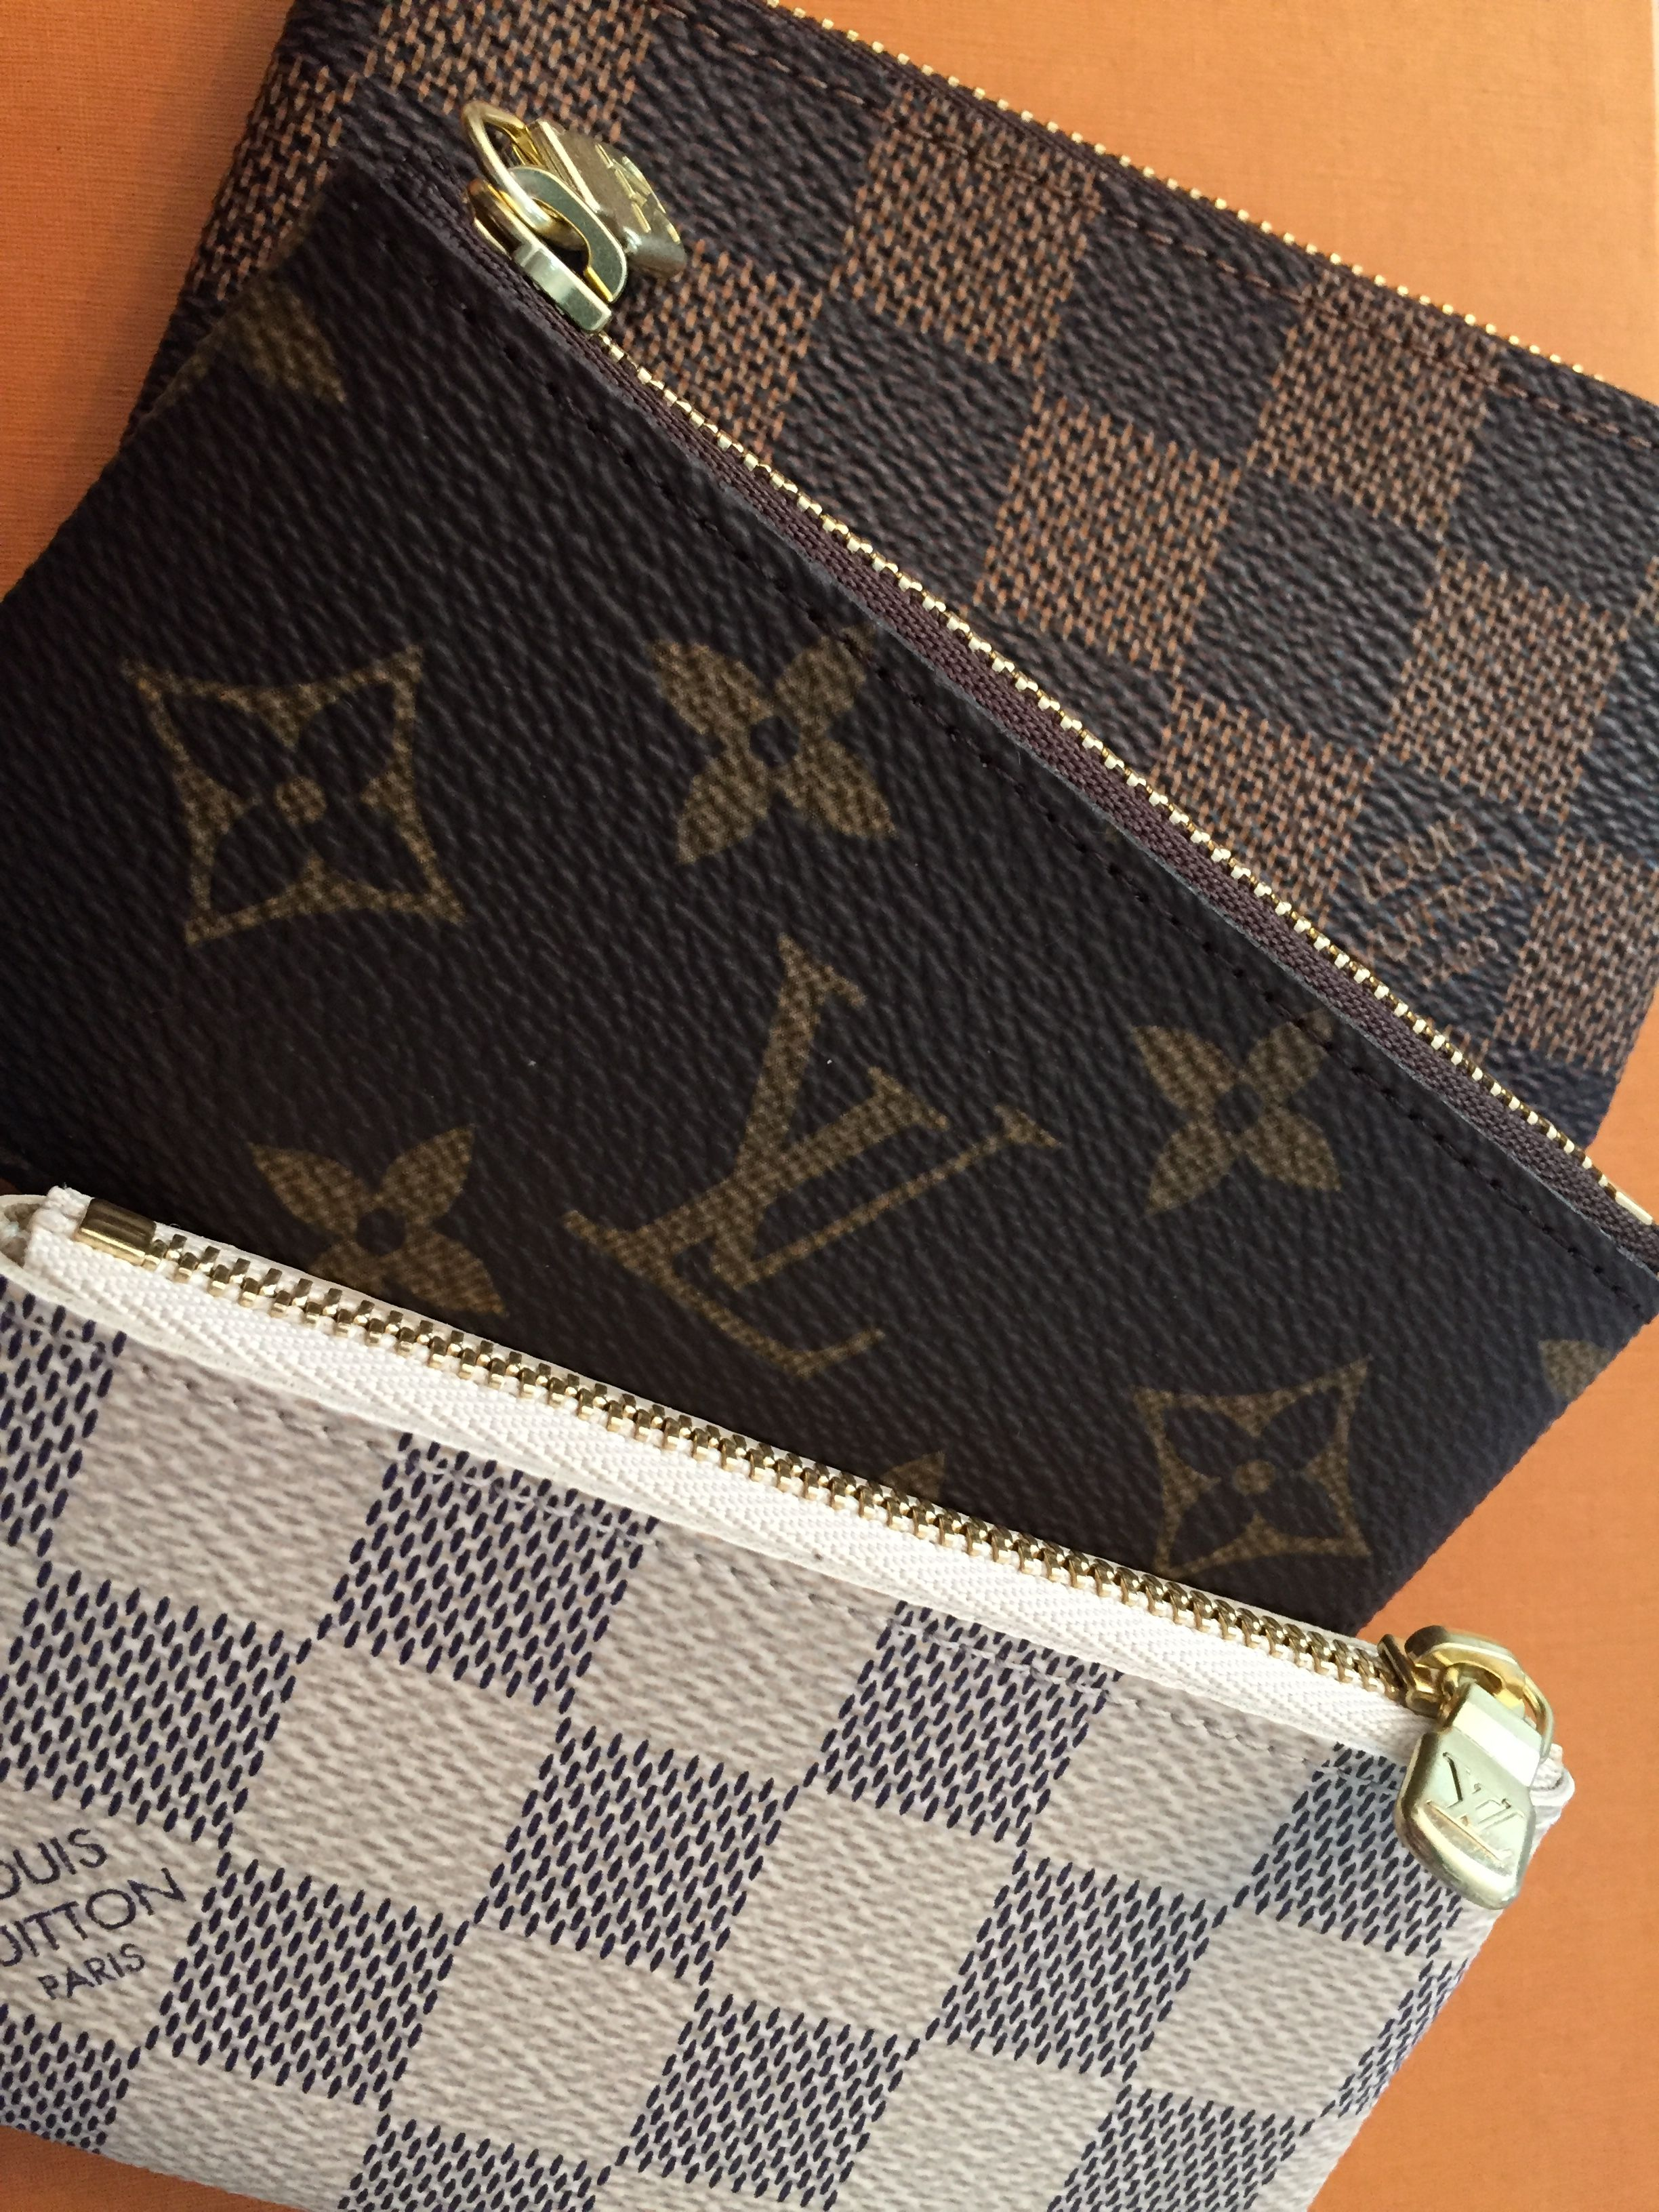 The trifecta - Louis Vuitton cles (key pouch) in Damier Ebene, Monogram, and Damier Azur